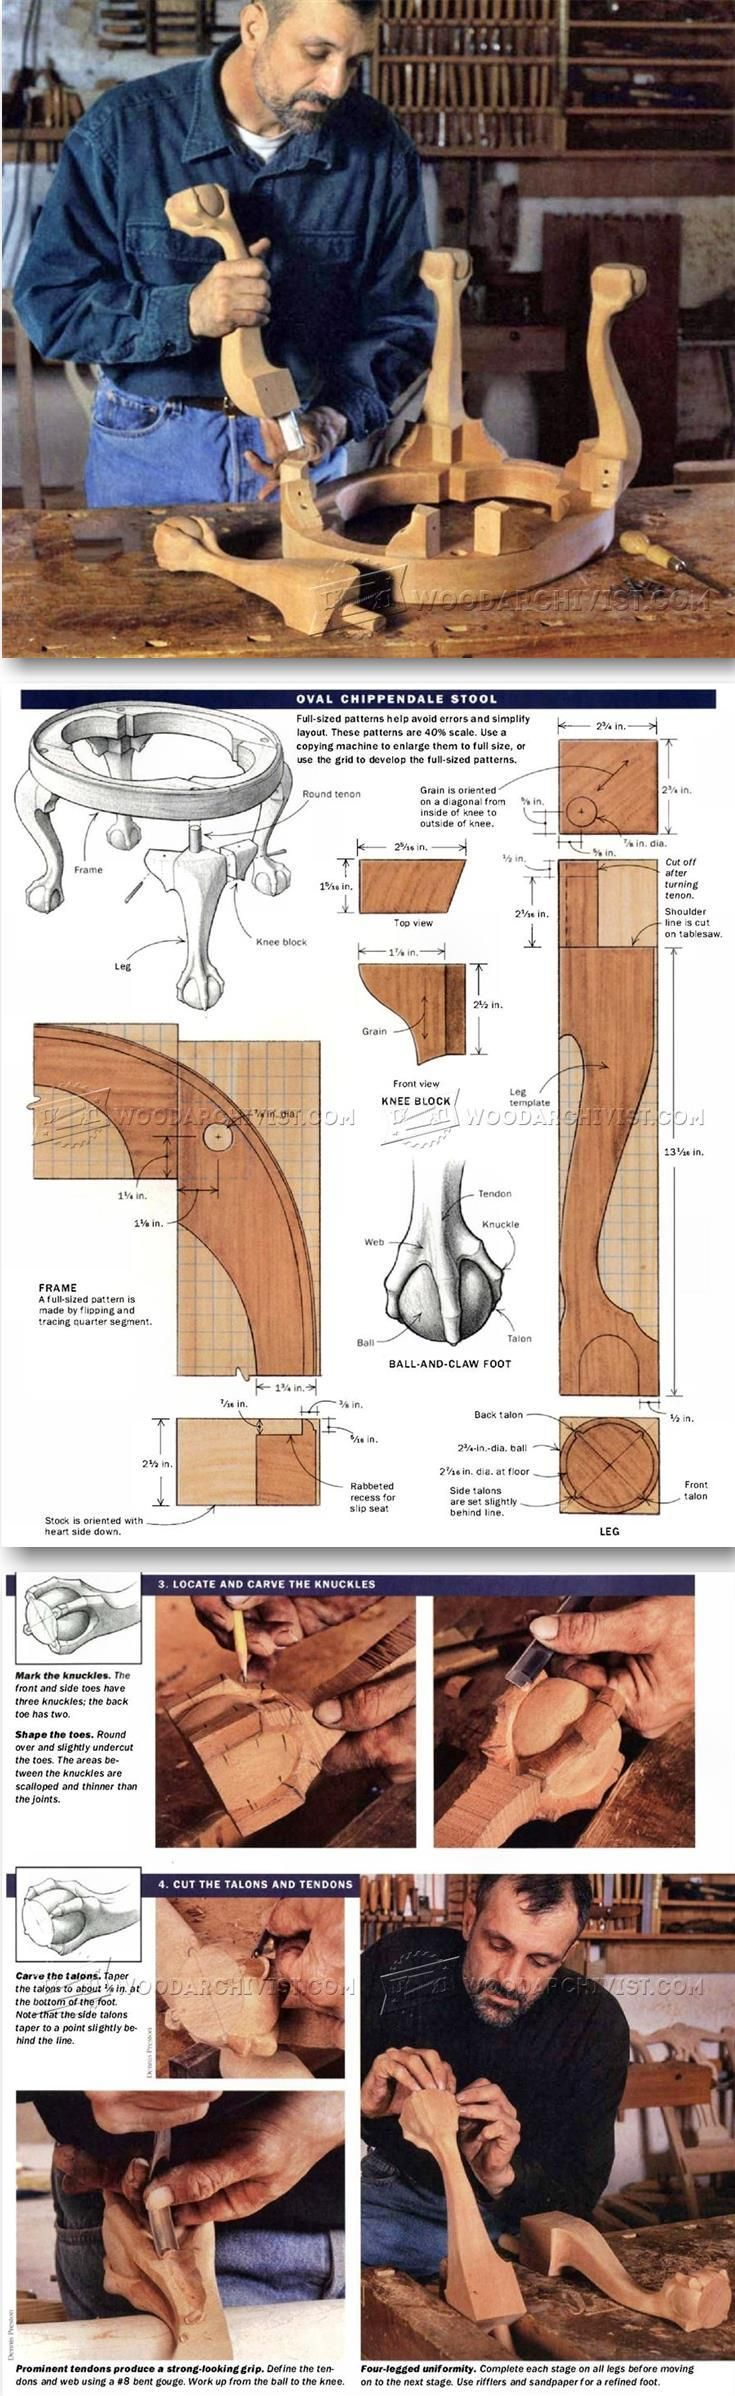 Oval Chippendale Stool Plans - Furniture Plans and Projects | http://WoodArchivist.com